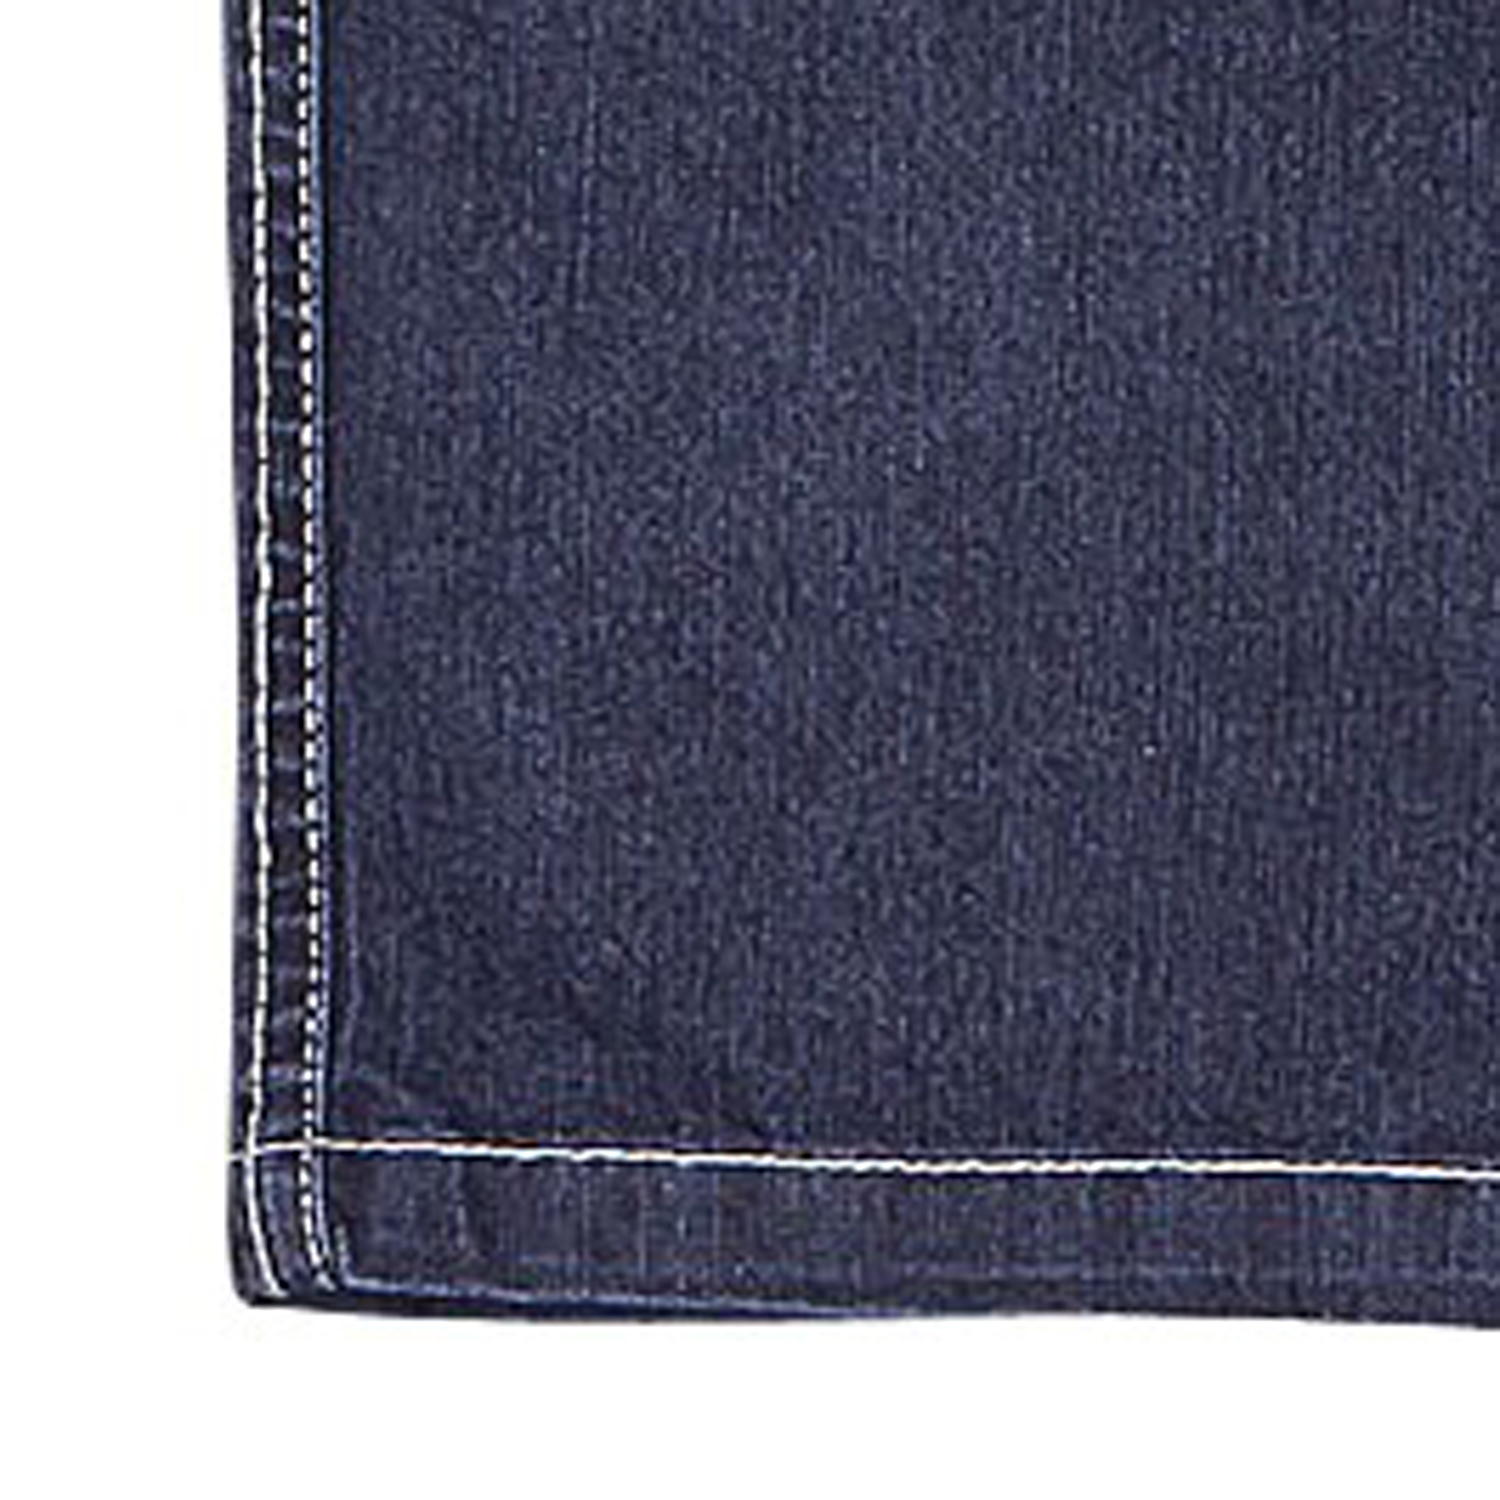 Detail Image to Dark blue jogging jeans by Abraxas in oversizes up to 12XL